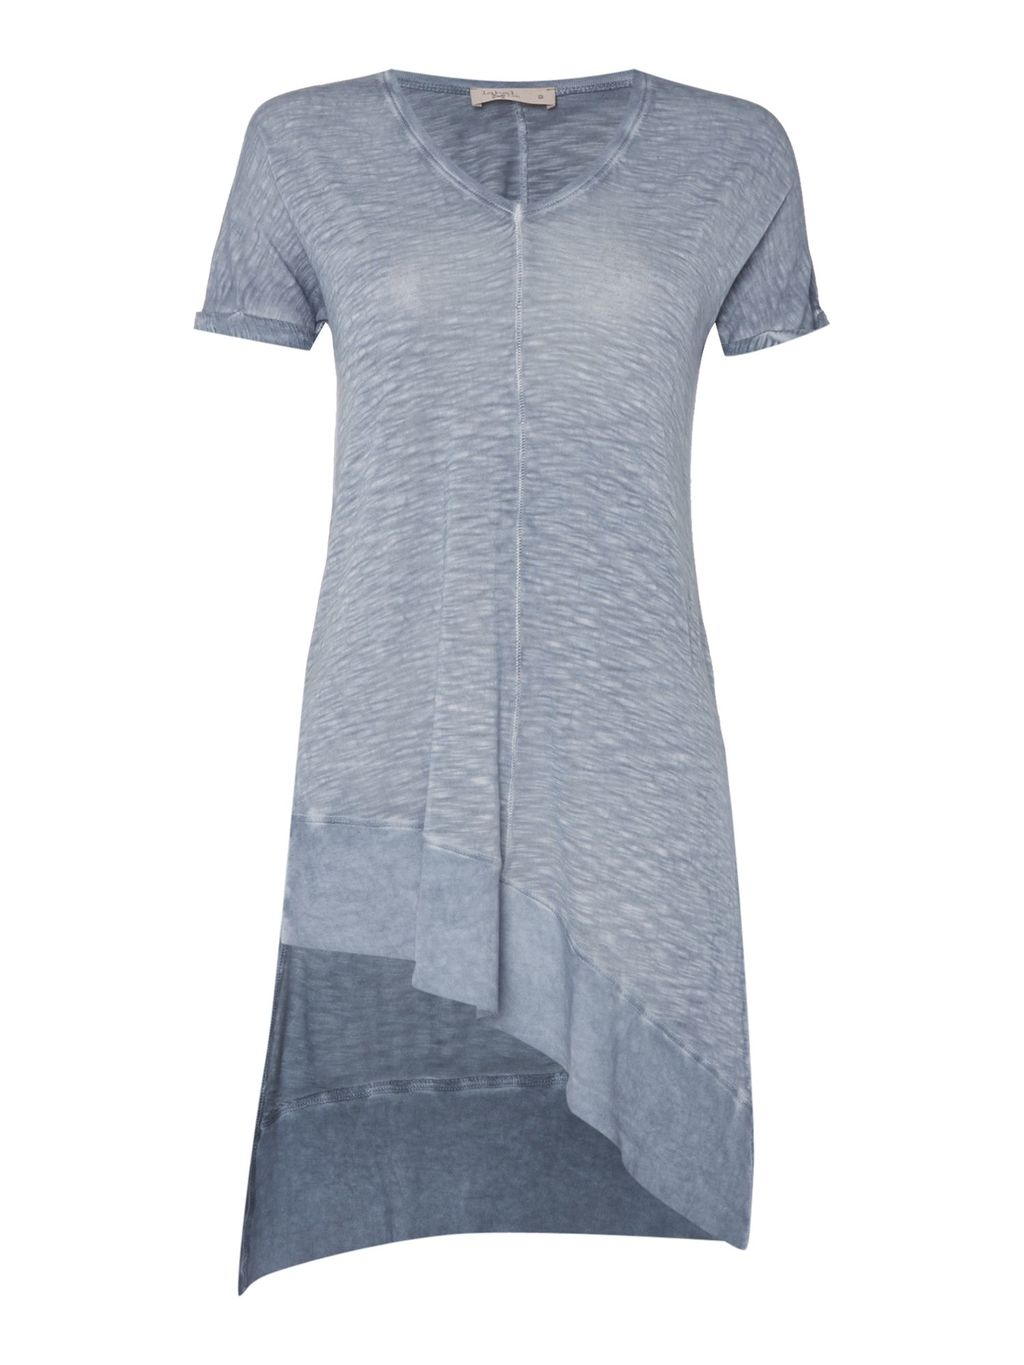 Rib Mix Jersey Tunic With Side Splits, Blue - neckline: v-neck; pattern: plain; length: below the bottom; style: tunic; predominant colour: pale blue; occasions: casual; fibres: viscose/rayon - 100%; fit: body skimming; sleeve length: short sleeve; sleeve style: standard; pattern type: fabric; texture group: jersey - stretchy/drapey; season: s/s 2016; wardrobe: highlight